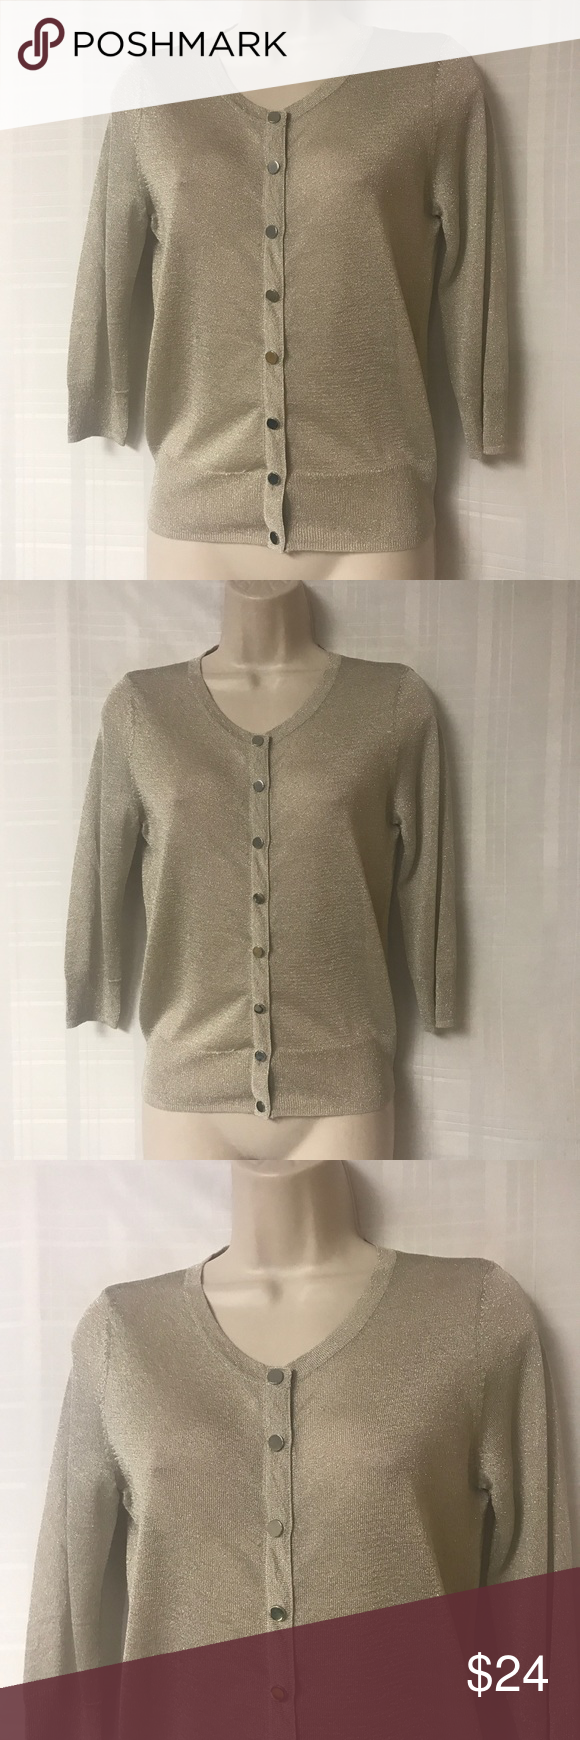 White House Black Market Gold Cardigan Size XS | Gold cardigan ...